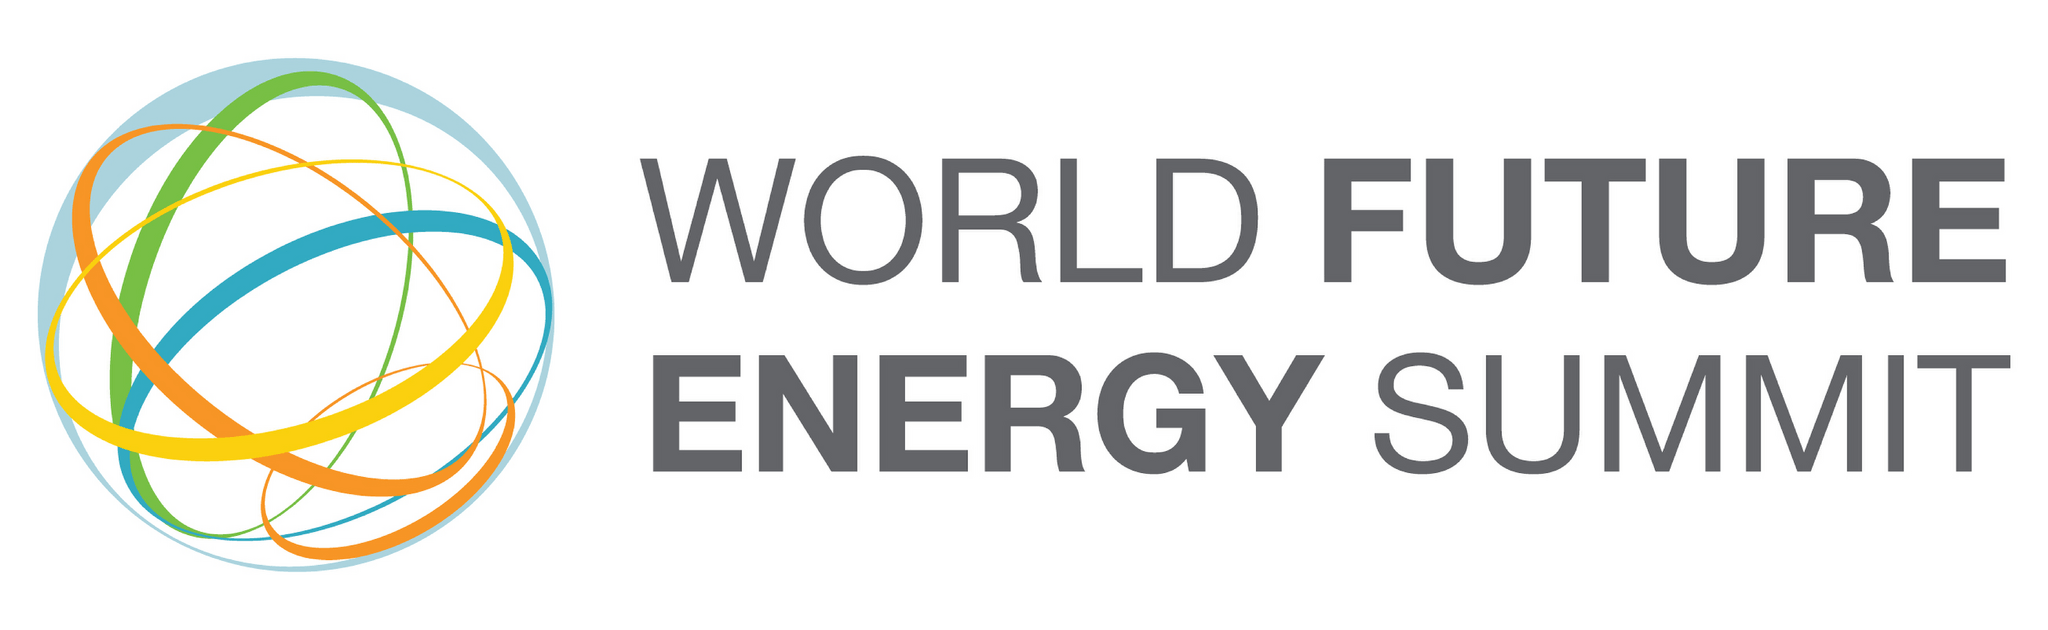 World Future Energy Summit (WFES) 2020 logo